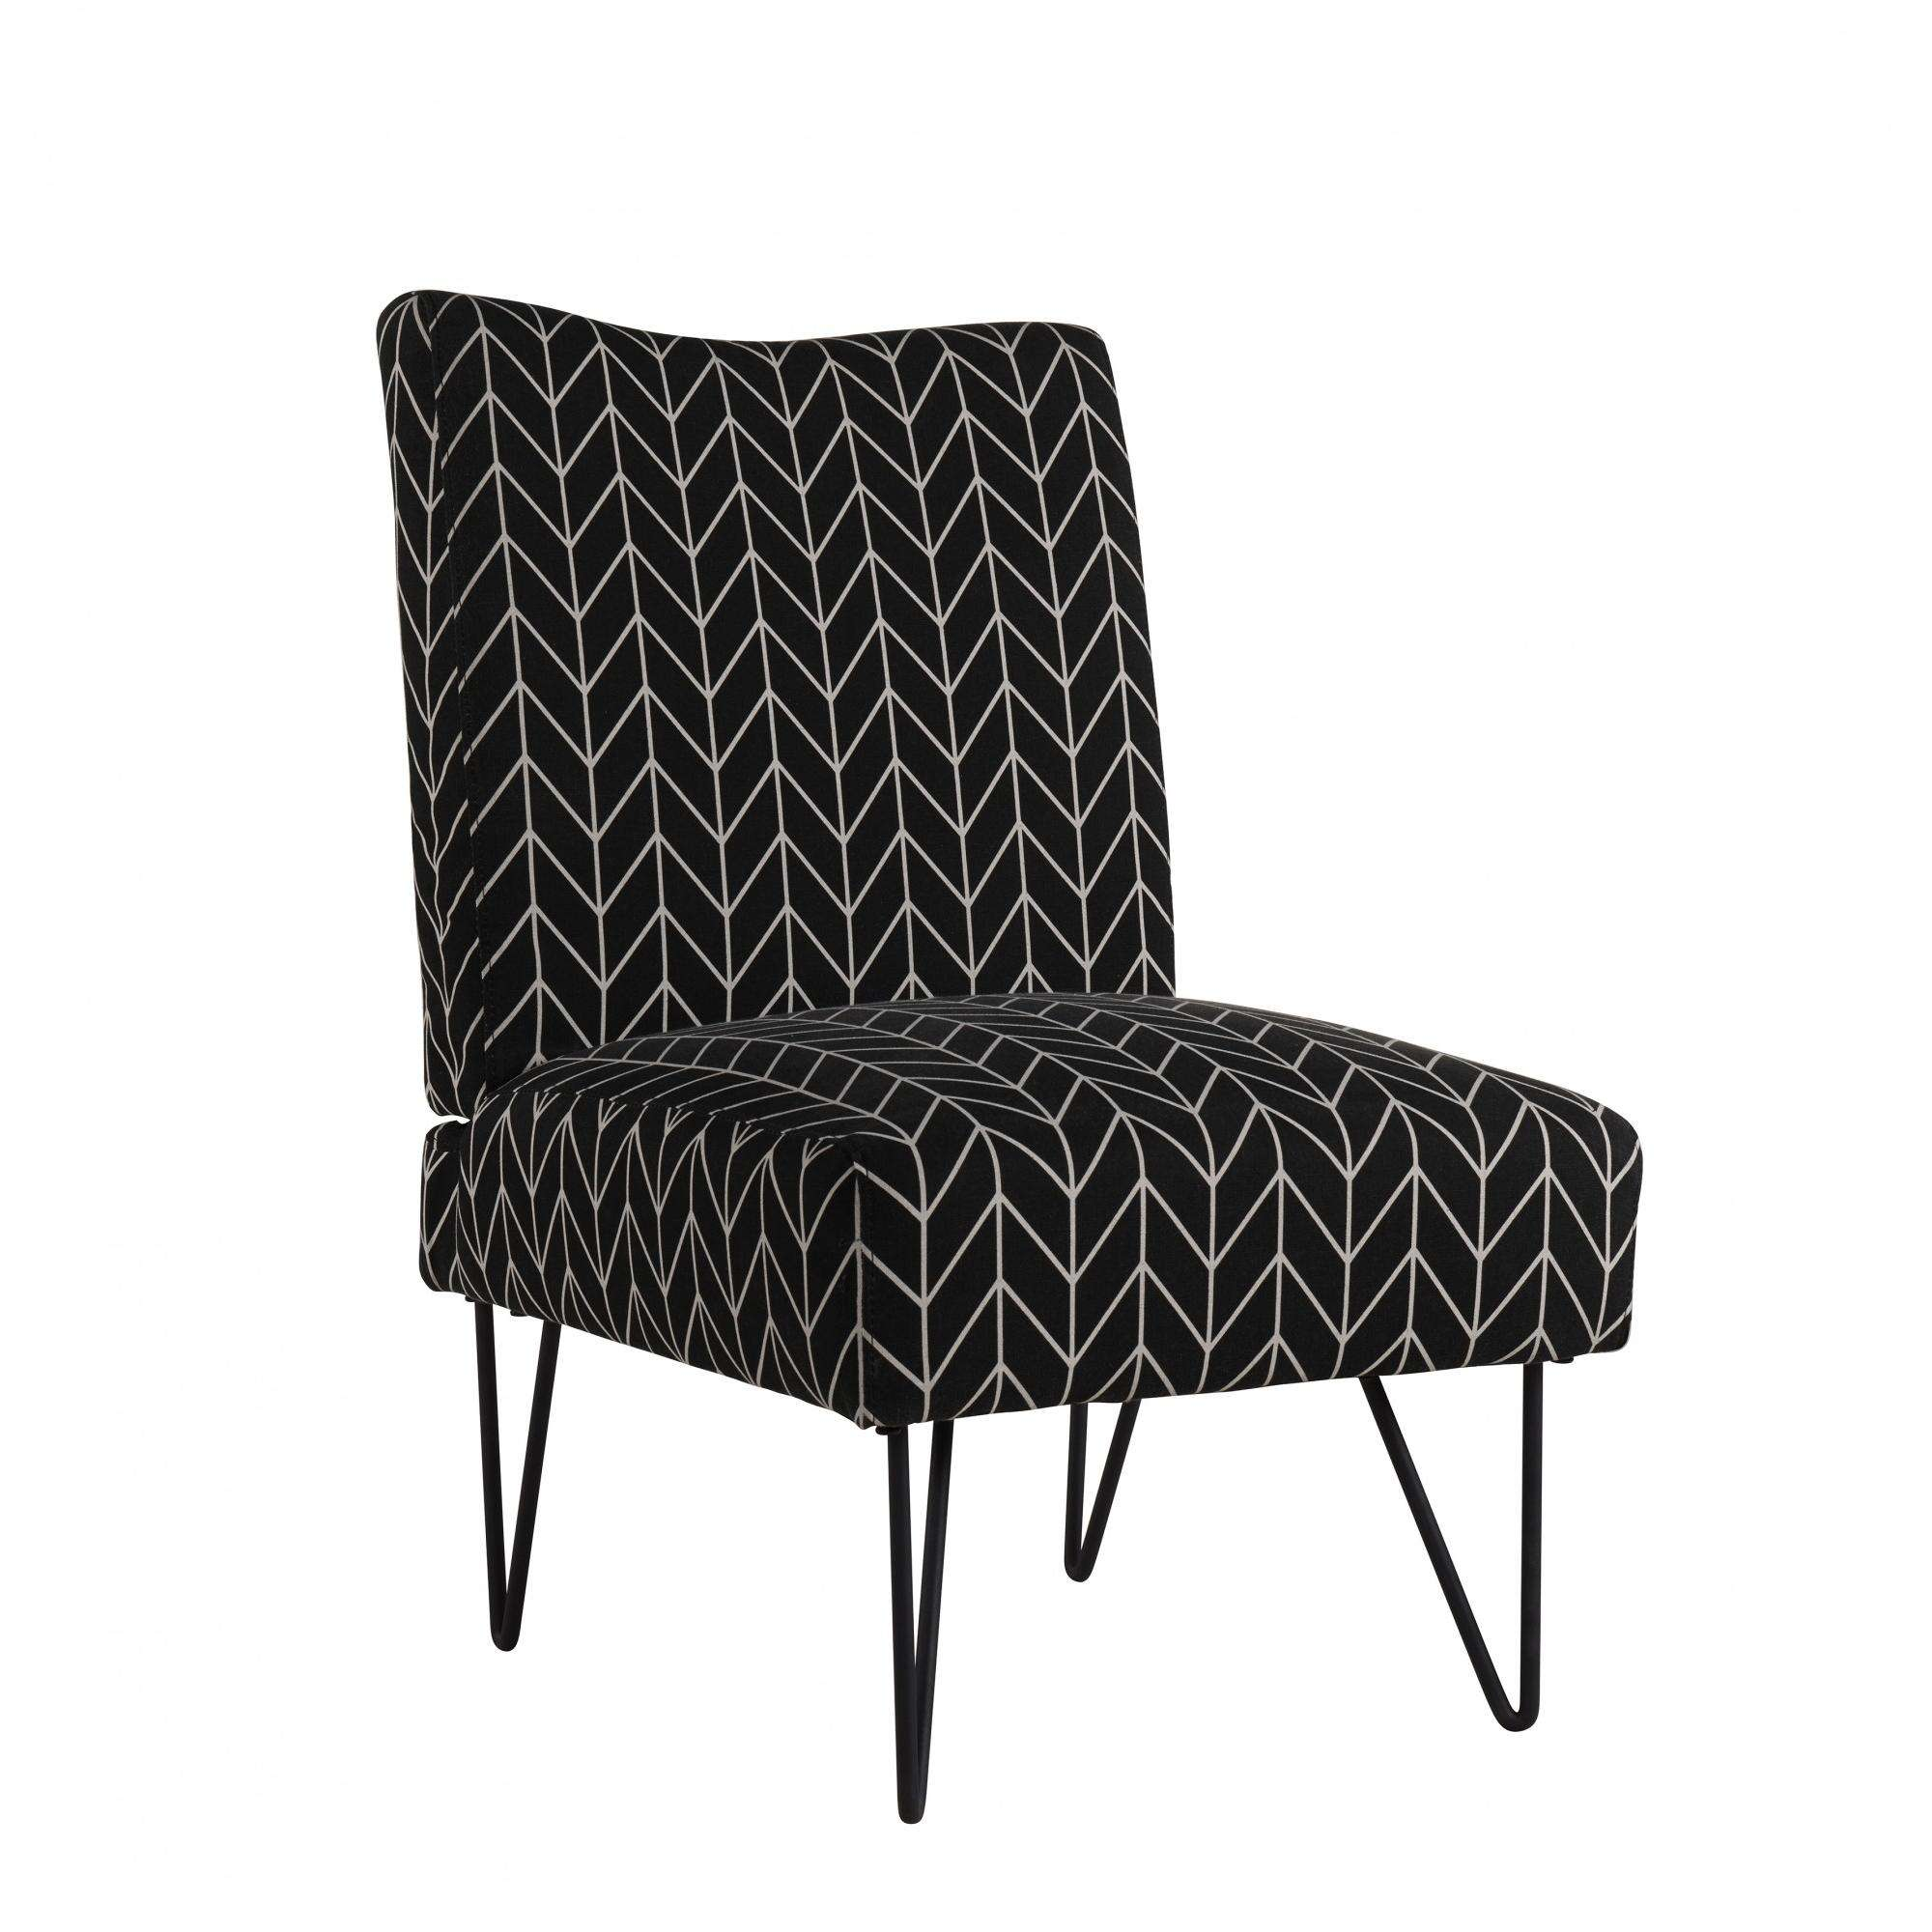 Product Image Mainstays Upholstered Hairpin Slipper Chair, Black Chevron